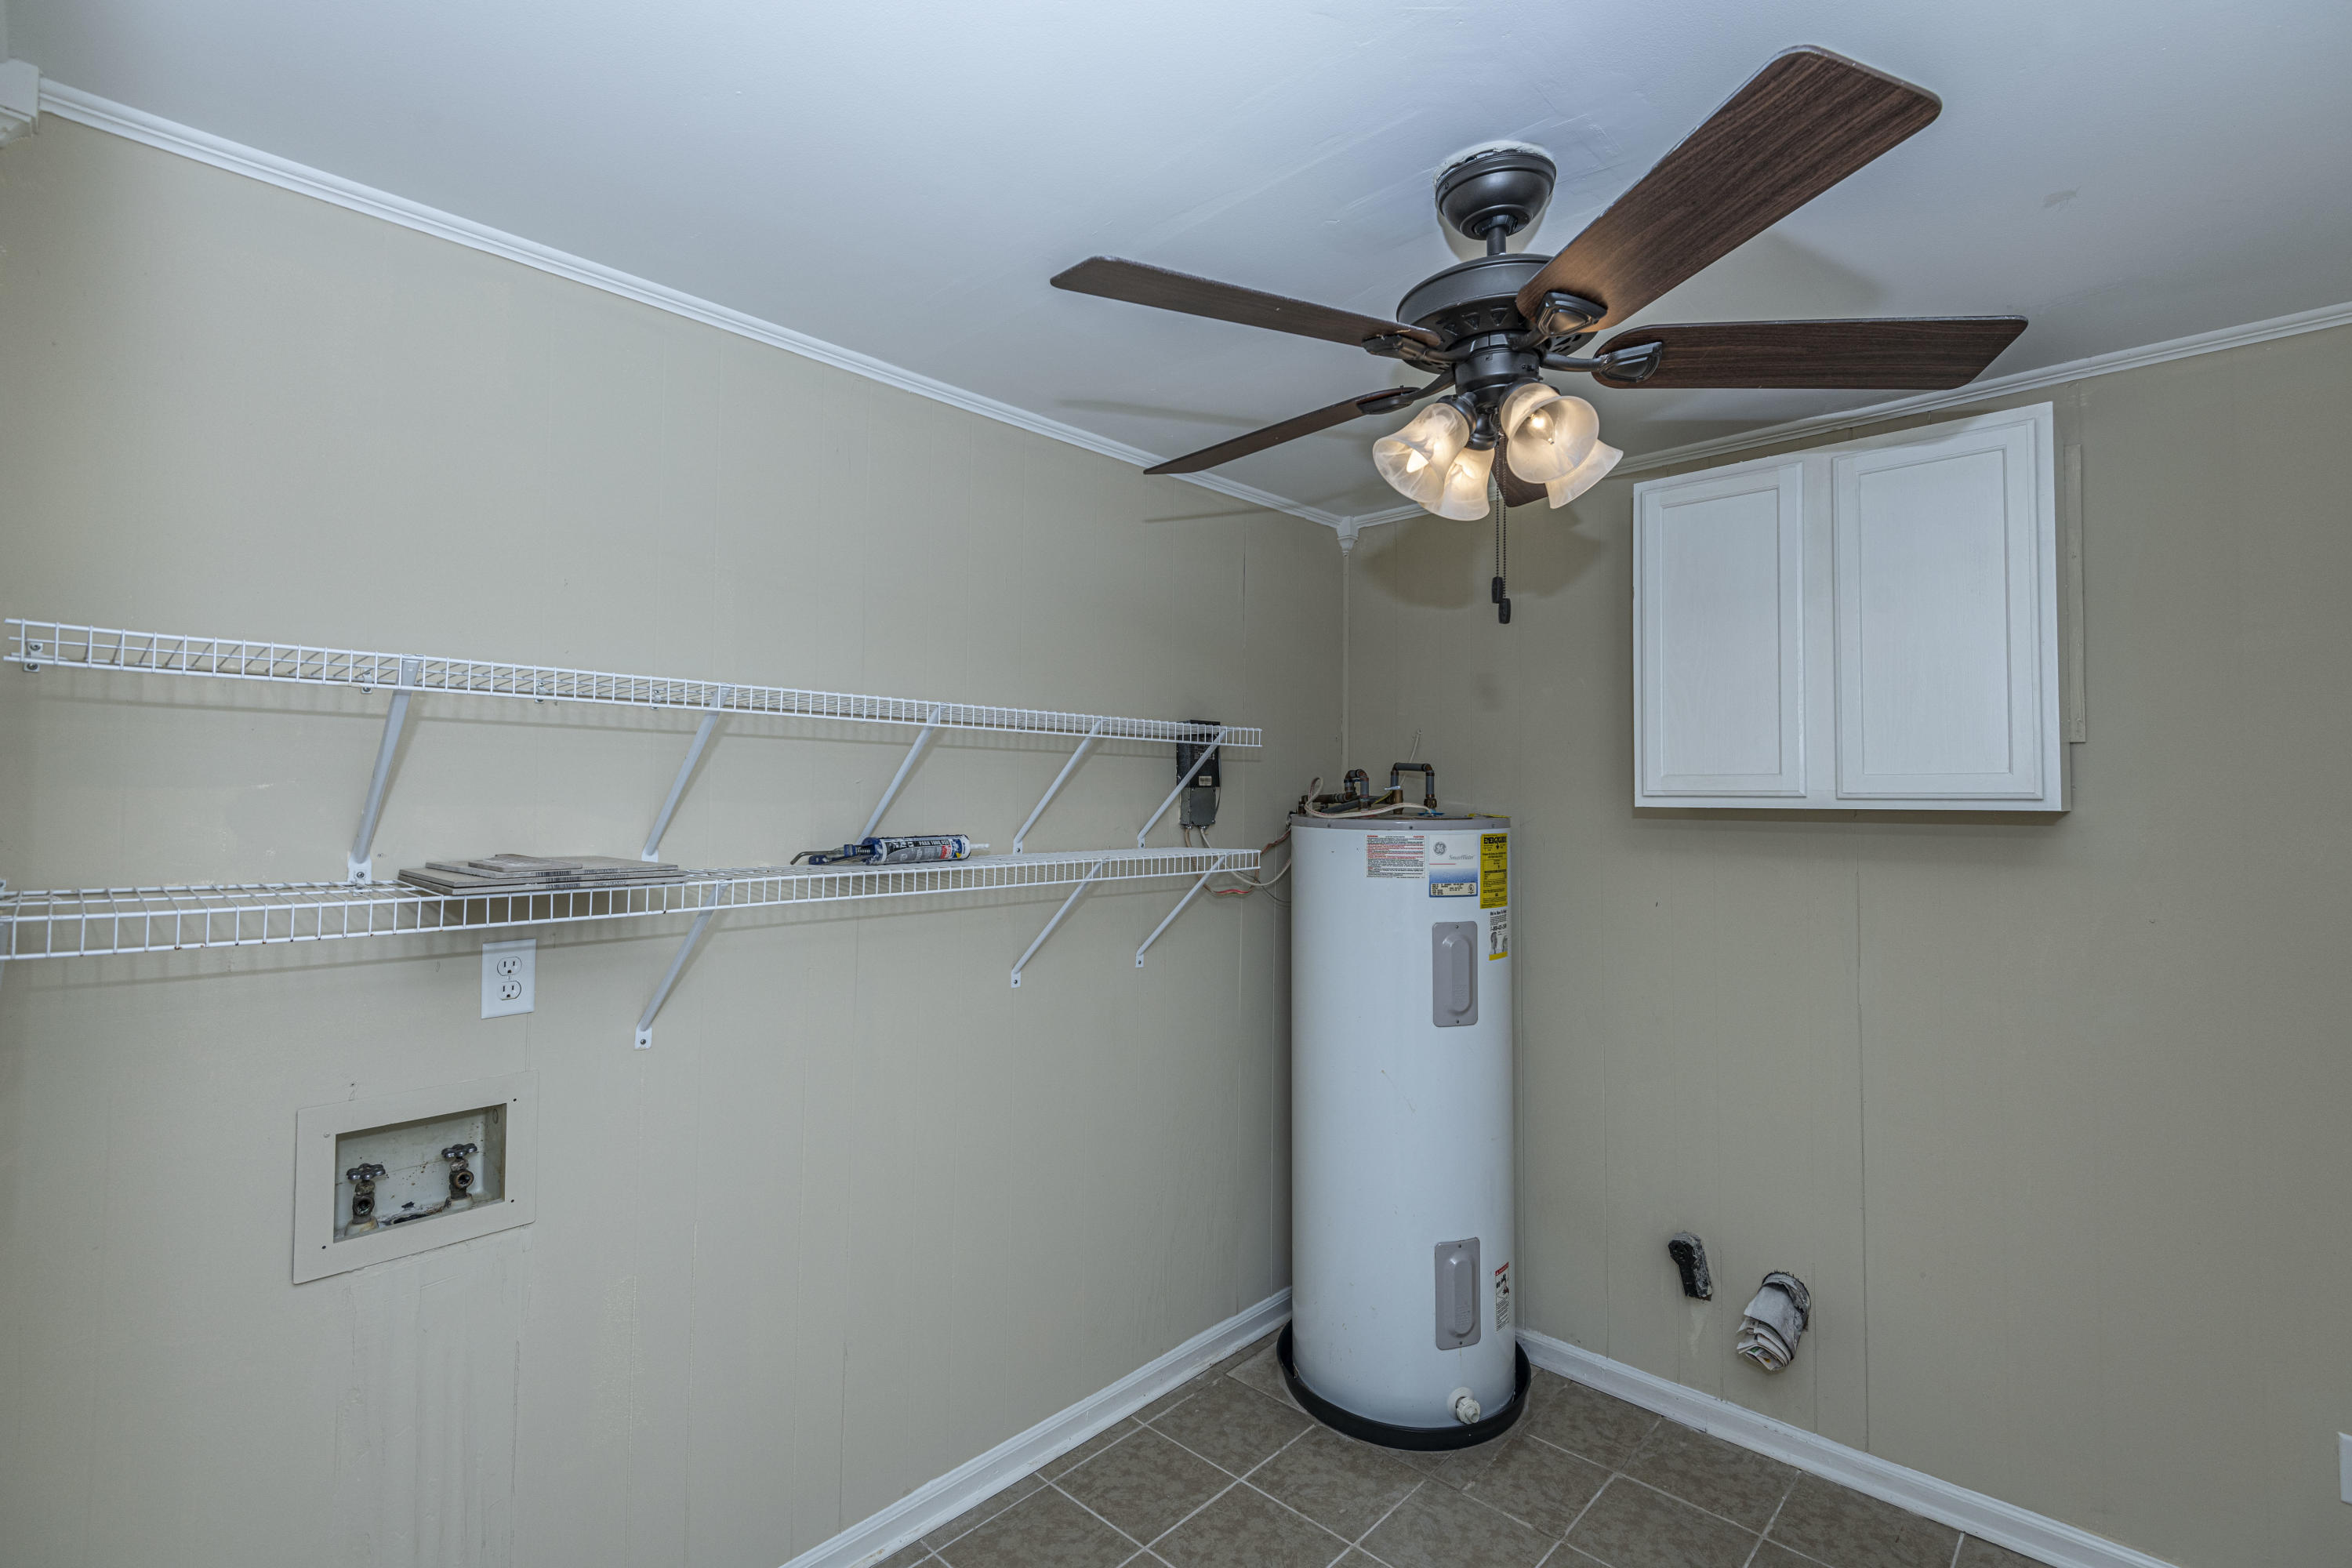 Foxborough Town Houses Homes For Sale - 120 Brush, Goose Creek, SC - 5